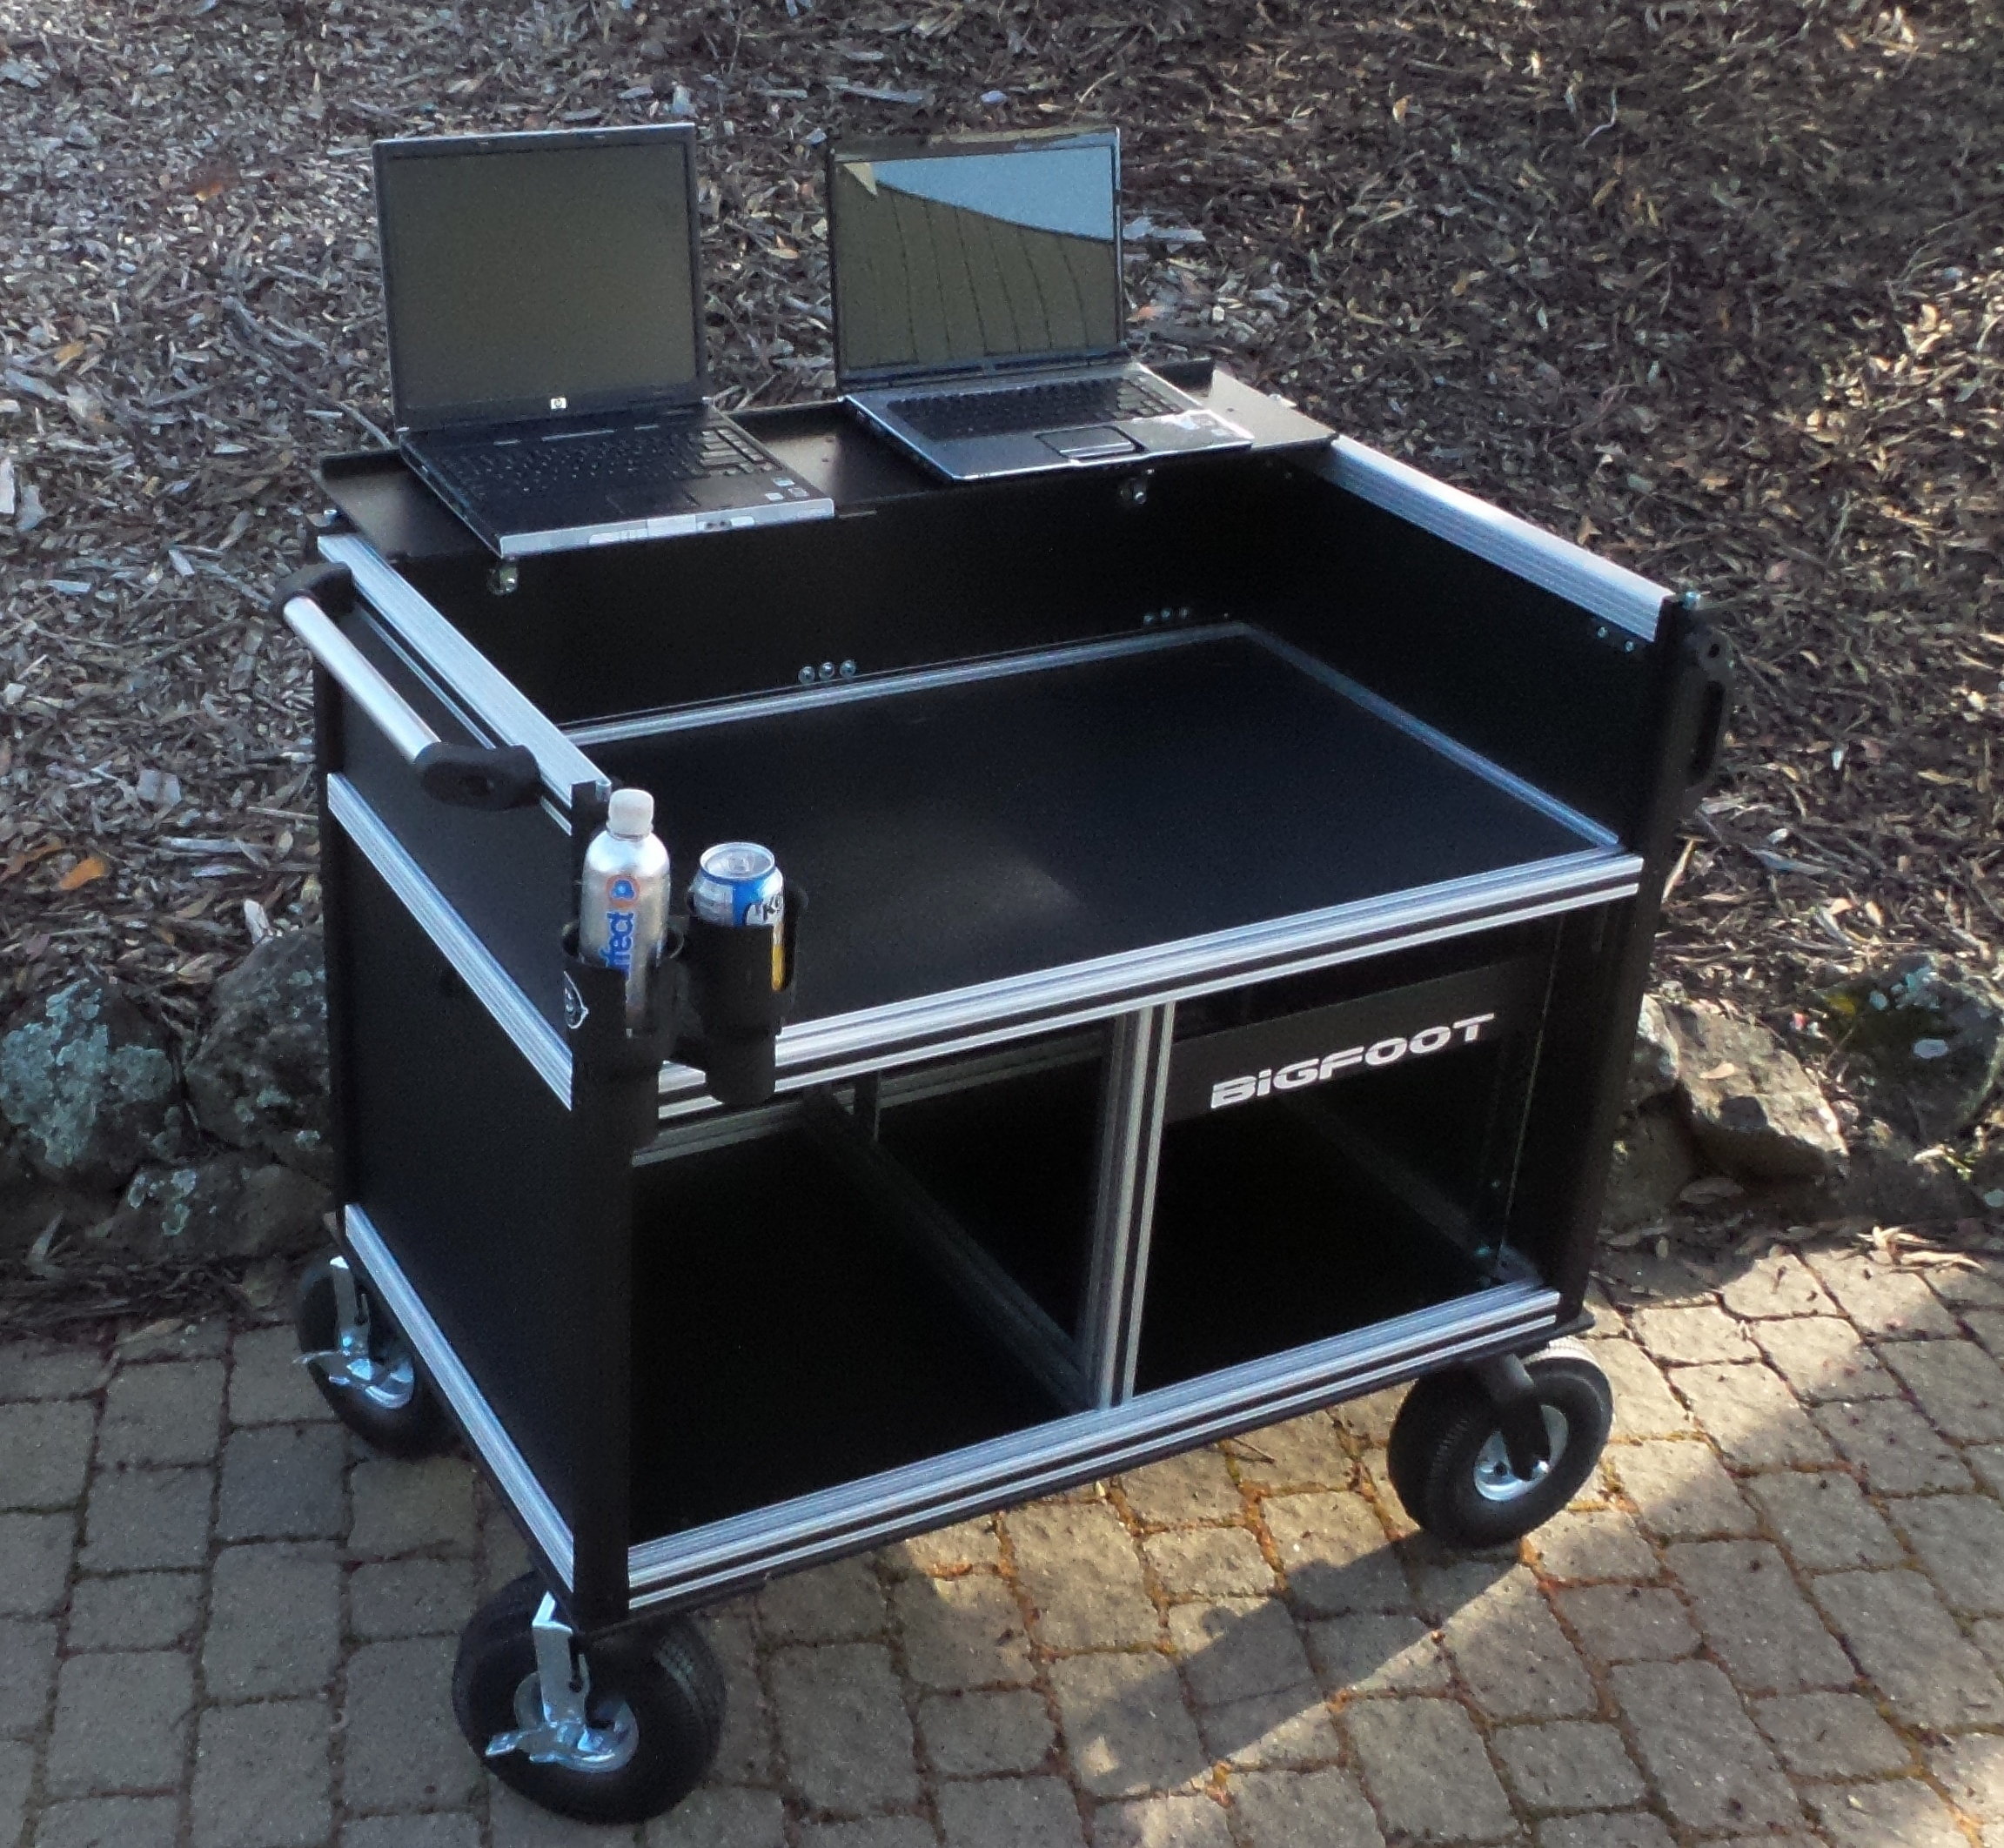 Bigfoot Large Audio Console System with large turf wheels, front shelf conversion